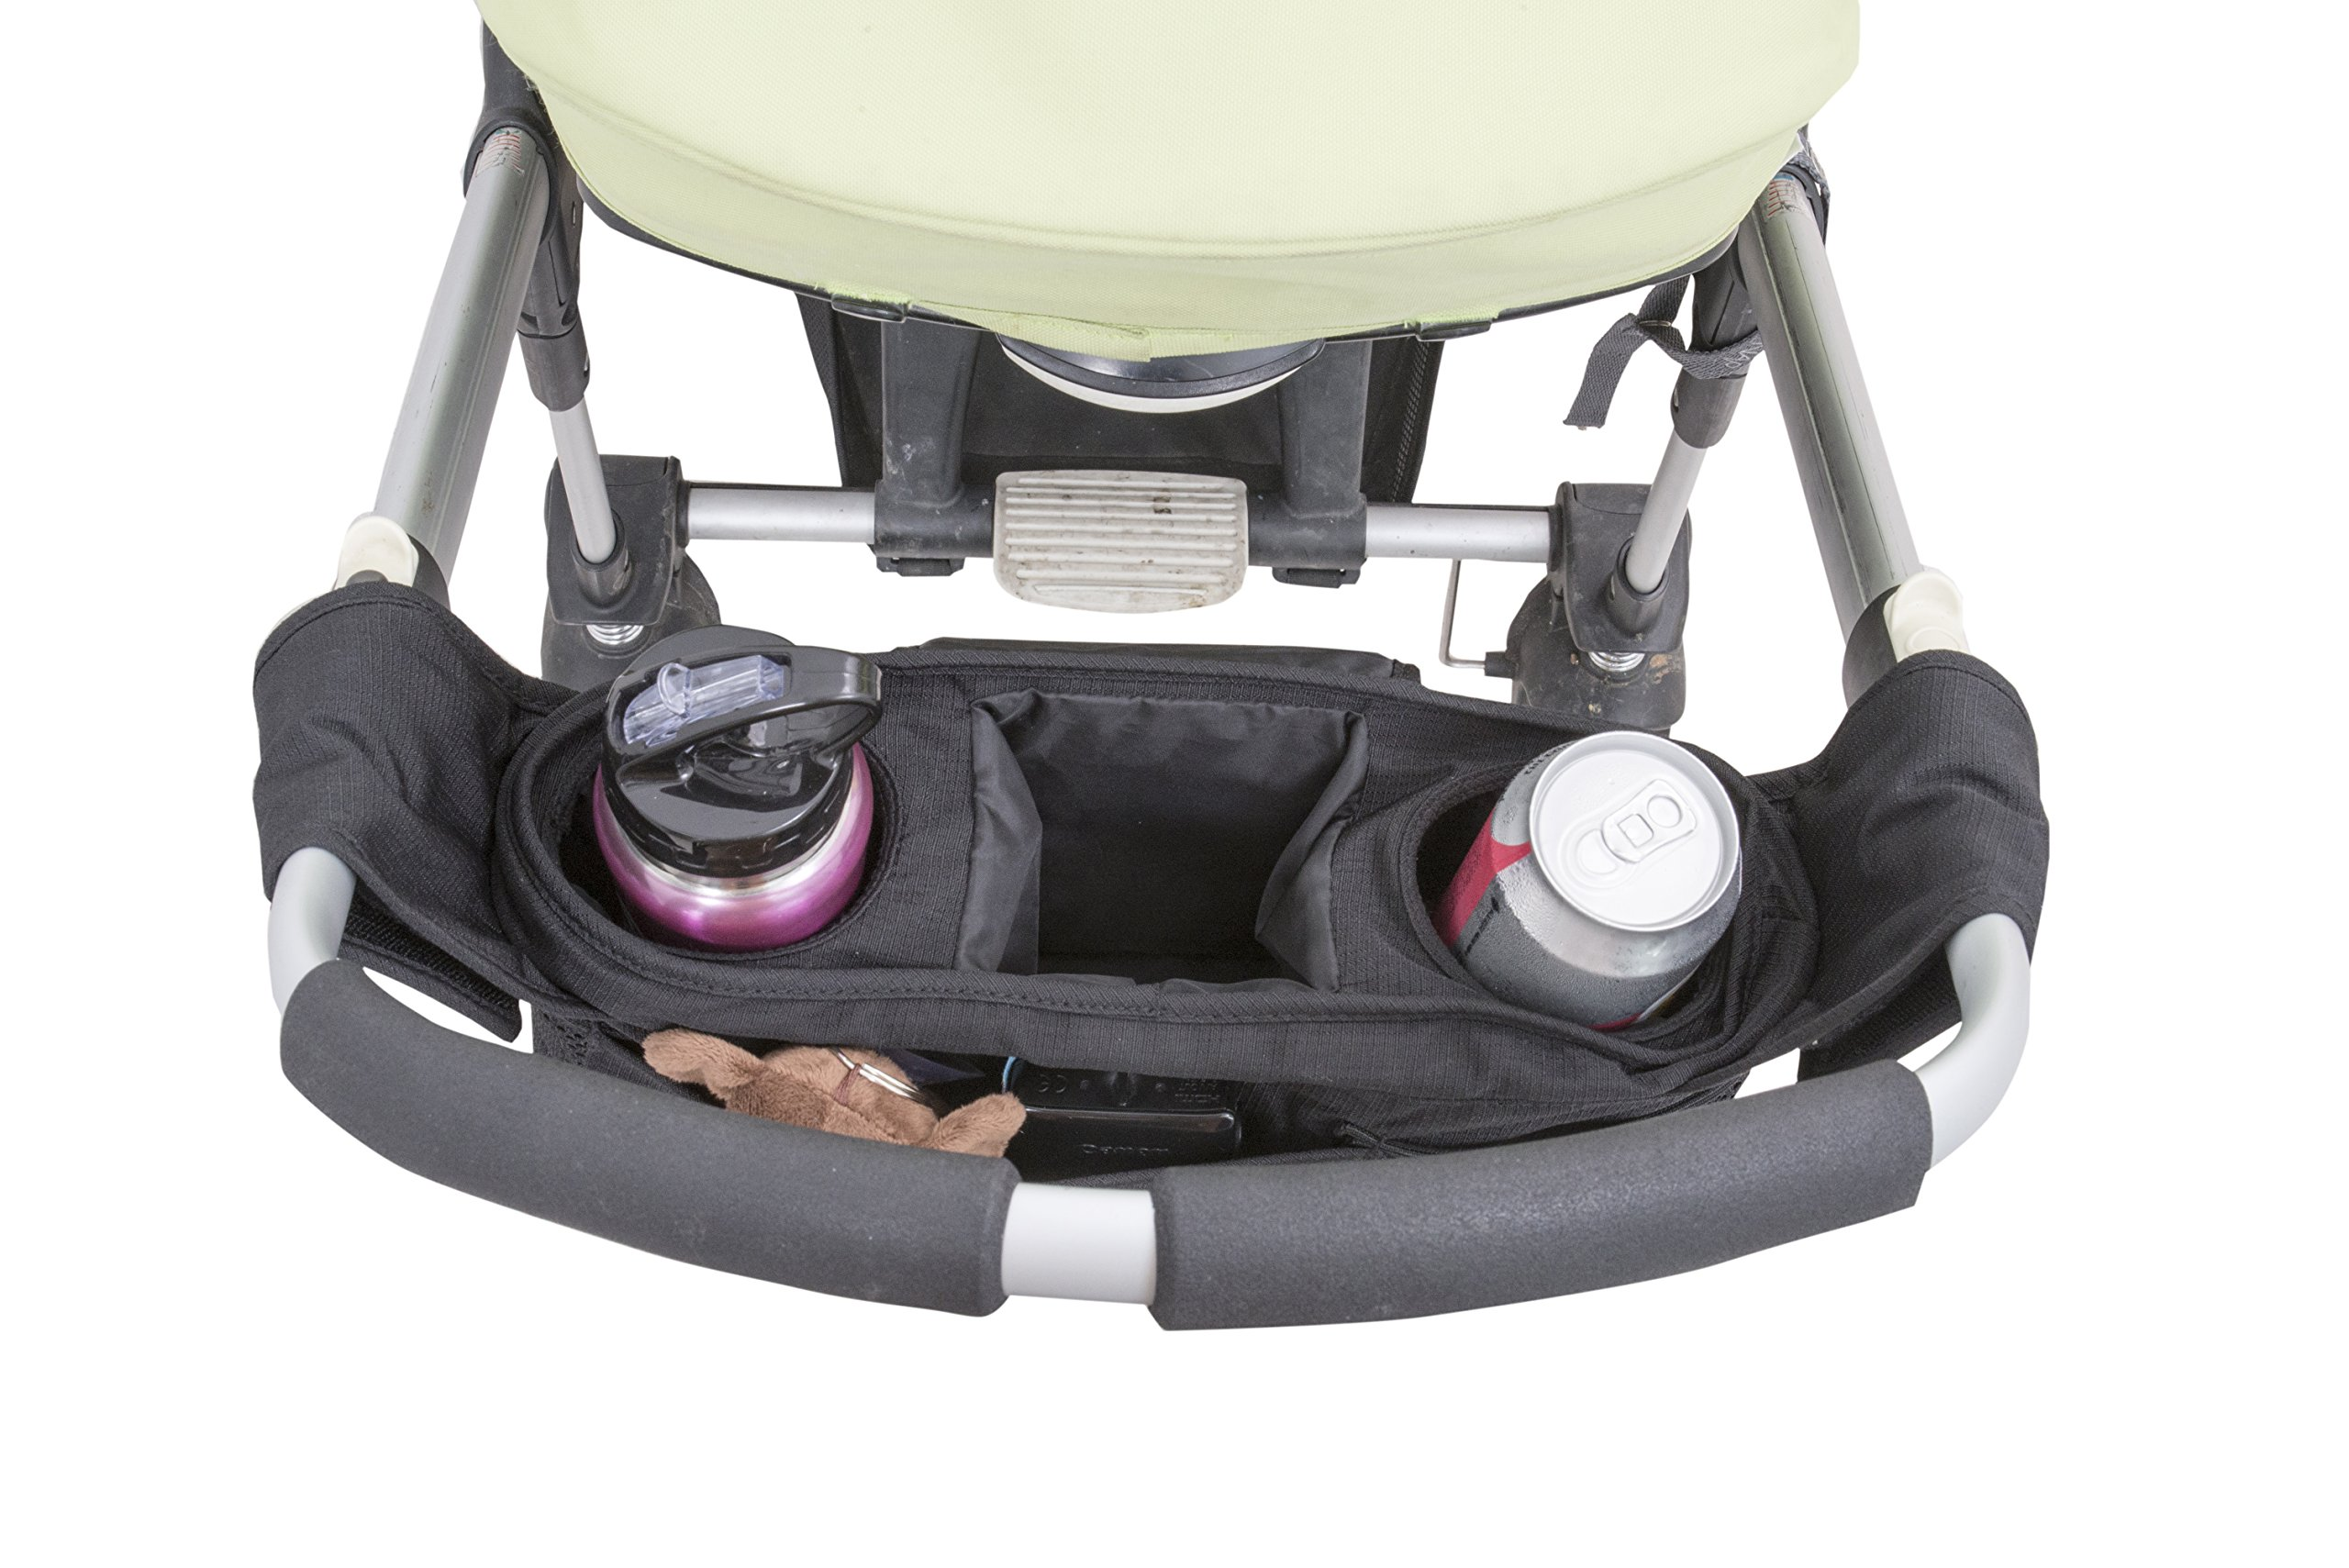 Quality Choices Universal Baby Stroller Organizer with Cup Holder and Two Hooks by Quality Choices (Image #4)